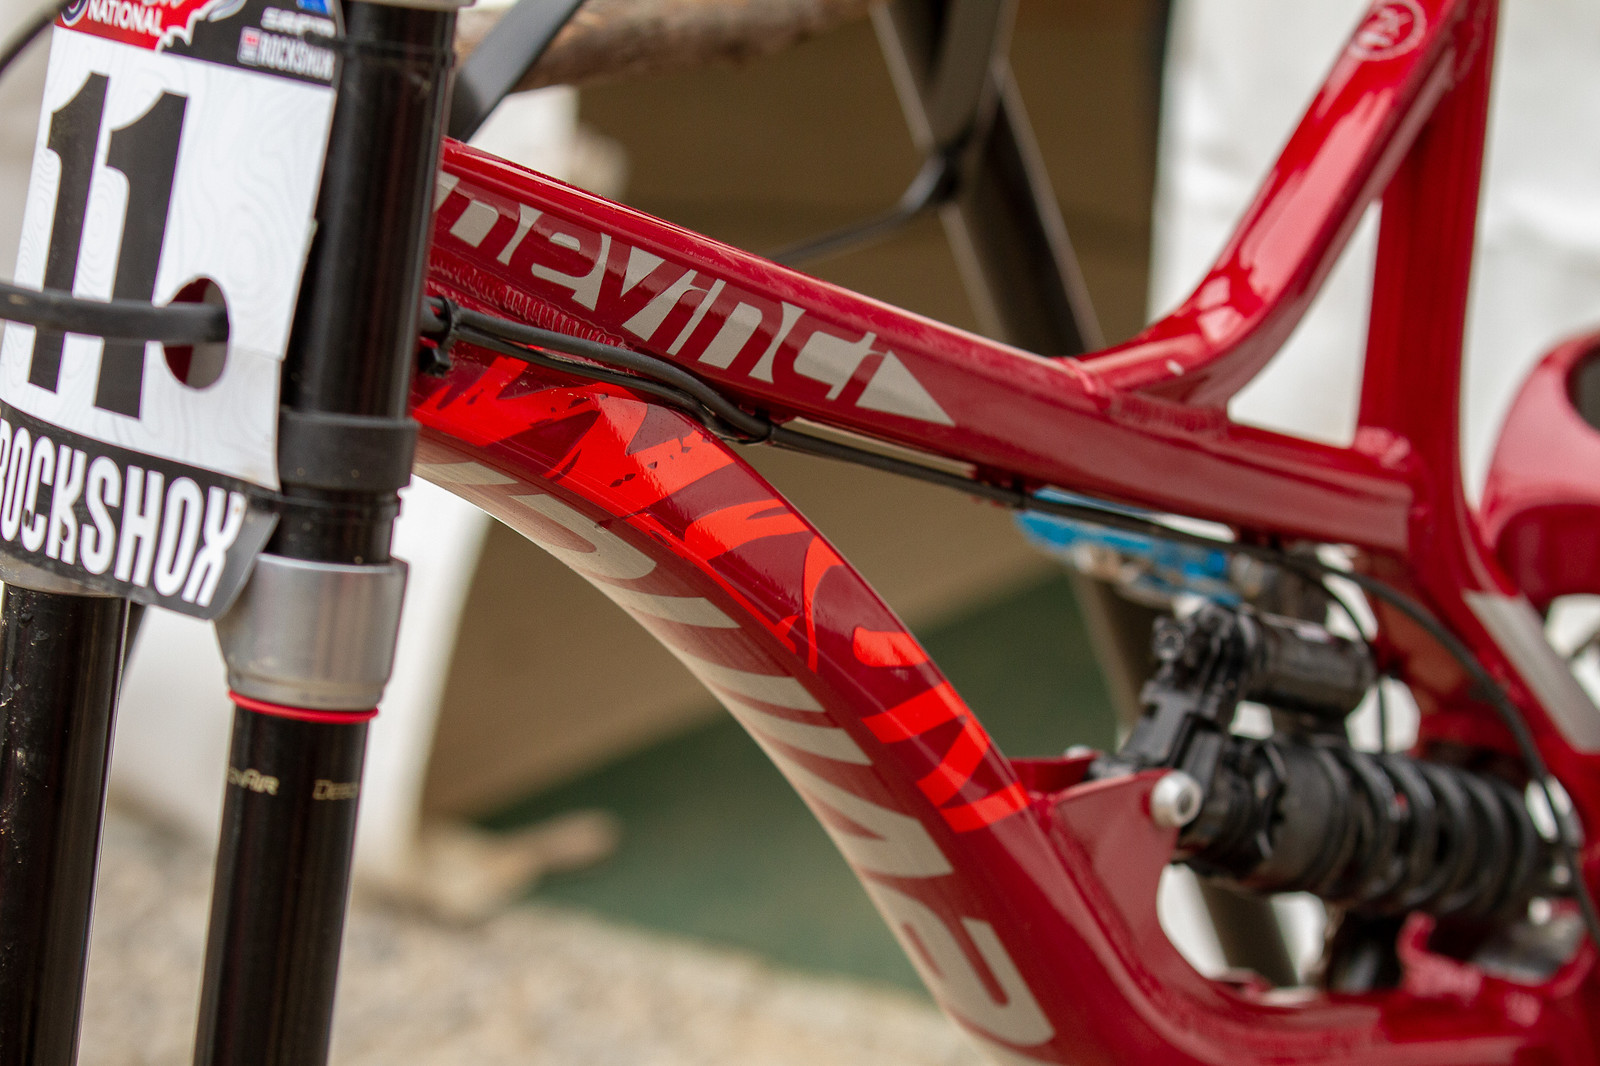 Dakotah Norton's Devinci Wilson - JackRice - Mountain Biking Pictures - Vital MTB